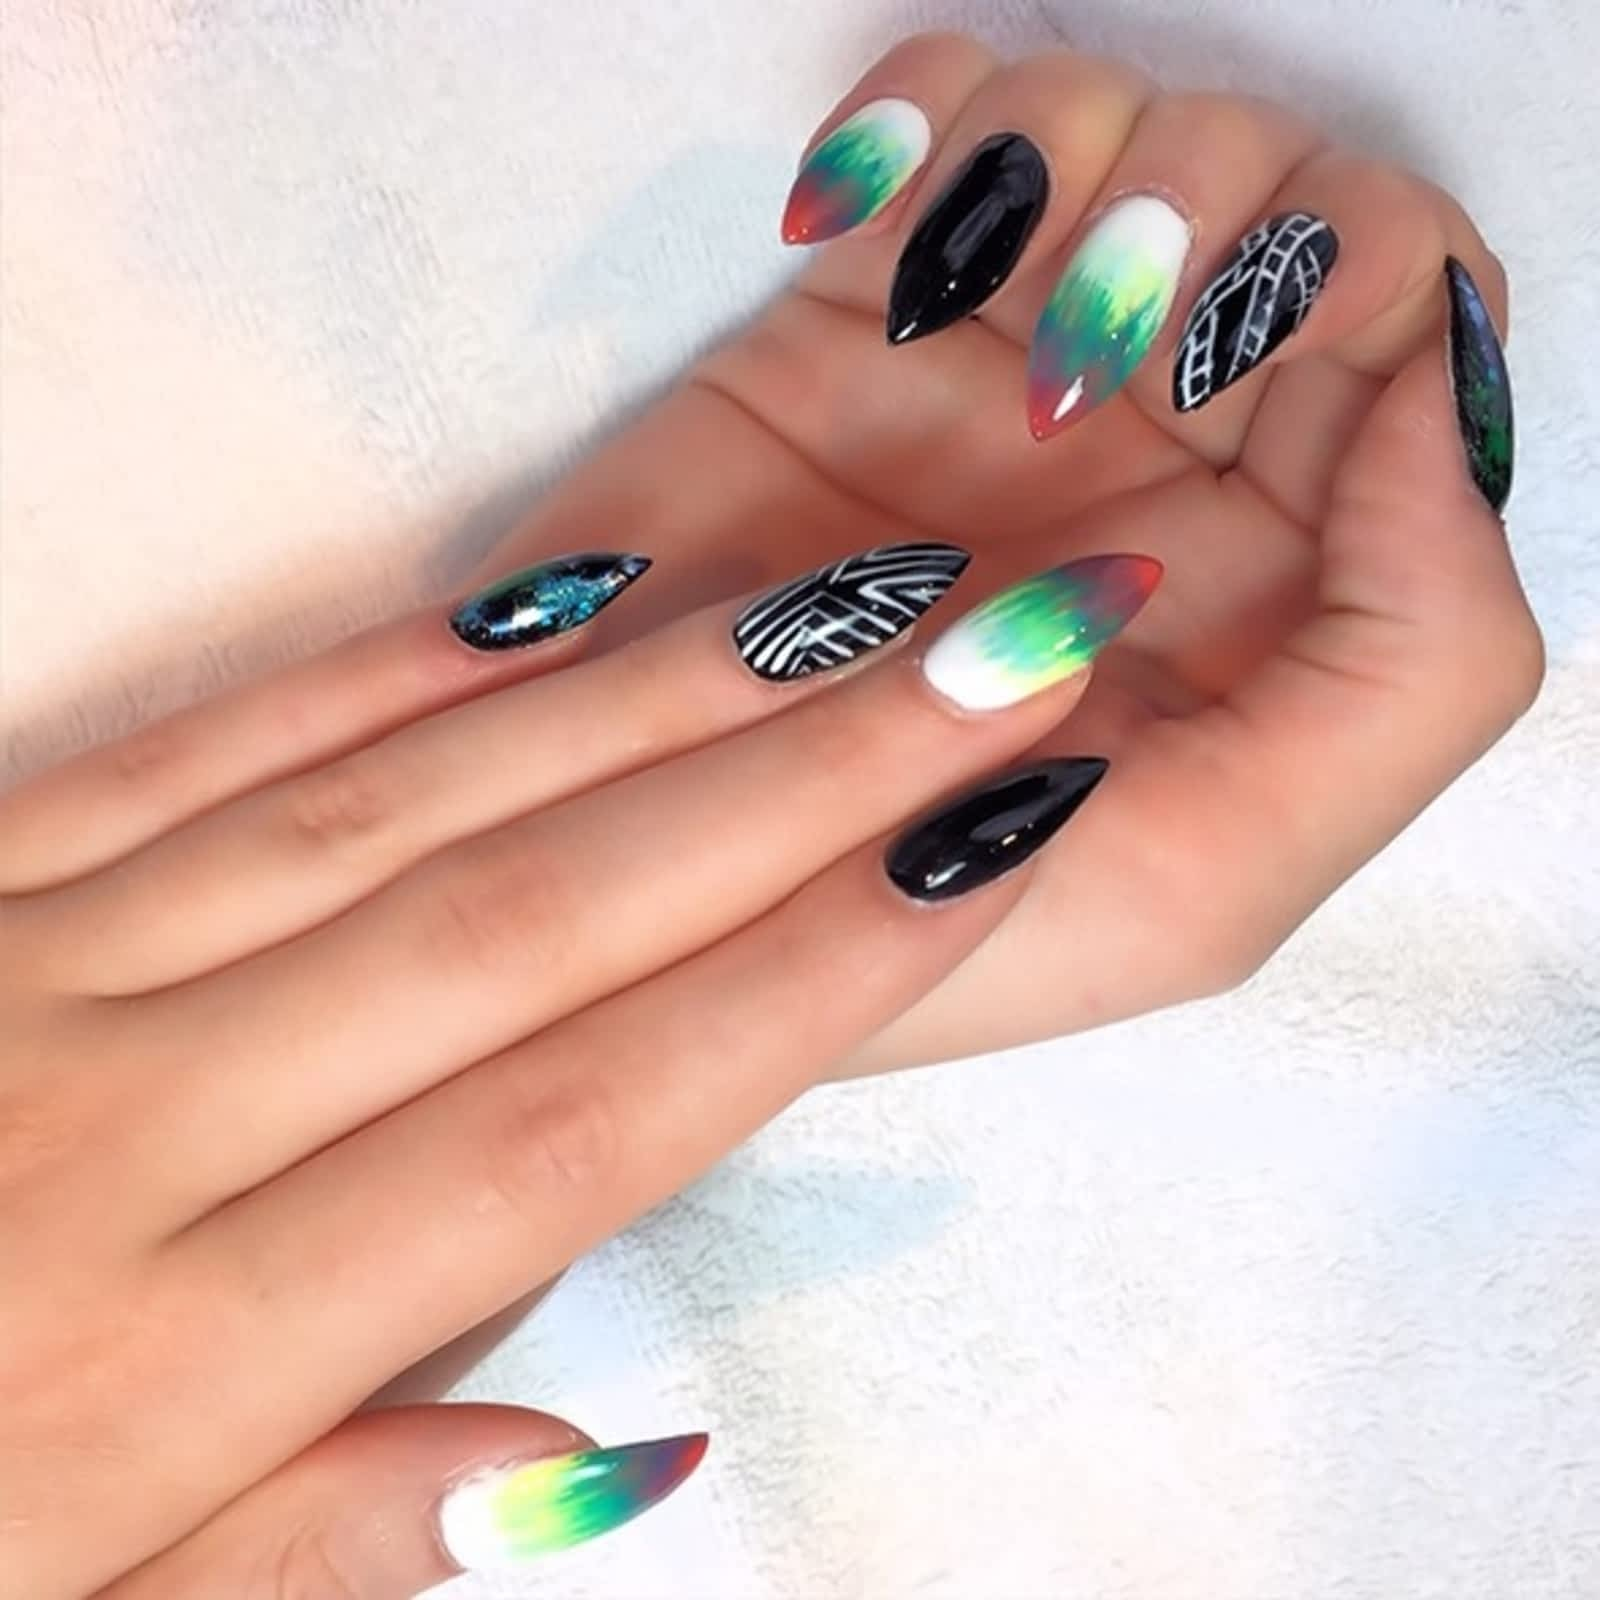 Exquisite Nails & Spa Ltd - Opening Hours - 347 17 Ave SW, Calgary, AB